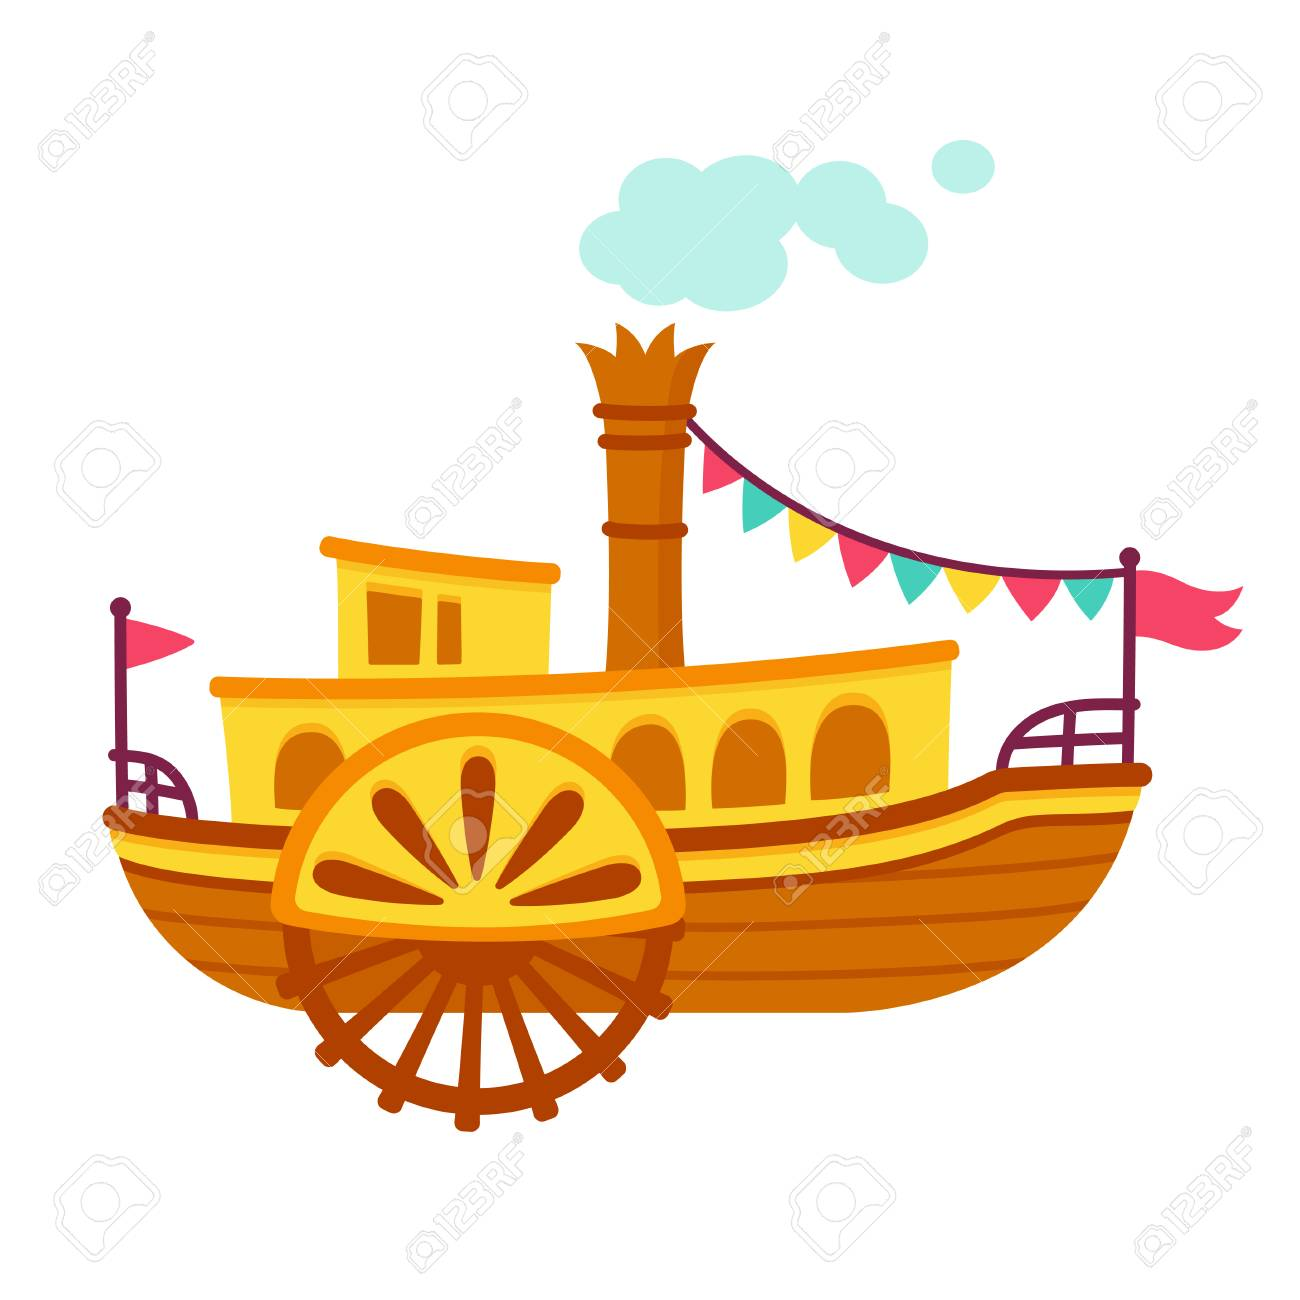 Bright cartoon retro steamboat with side paddle wheel. Old vintage ship vector illustration. - 85495276